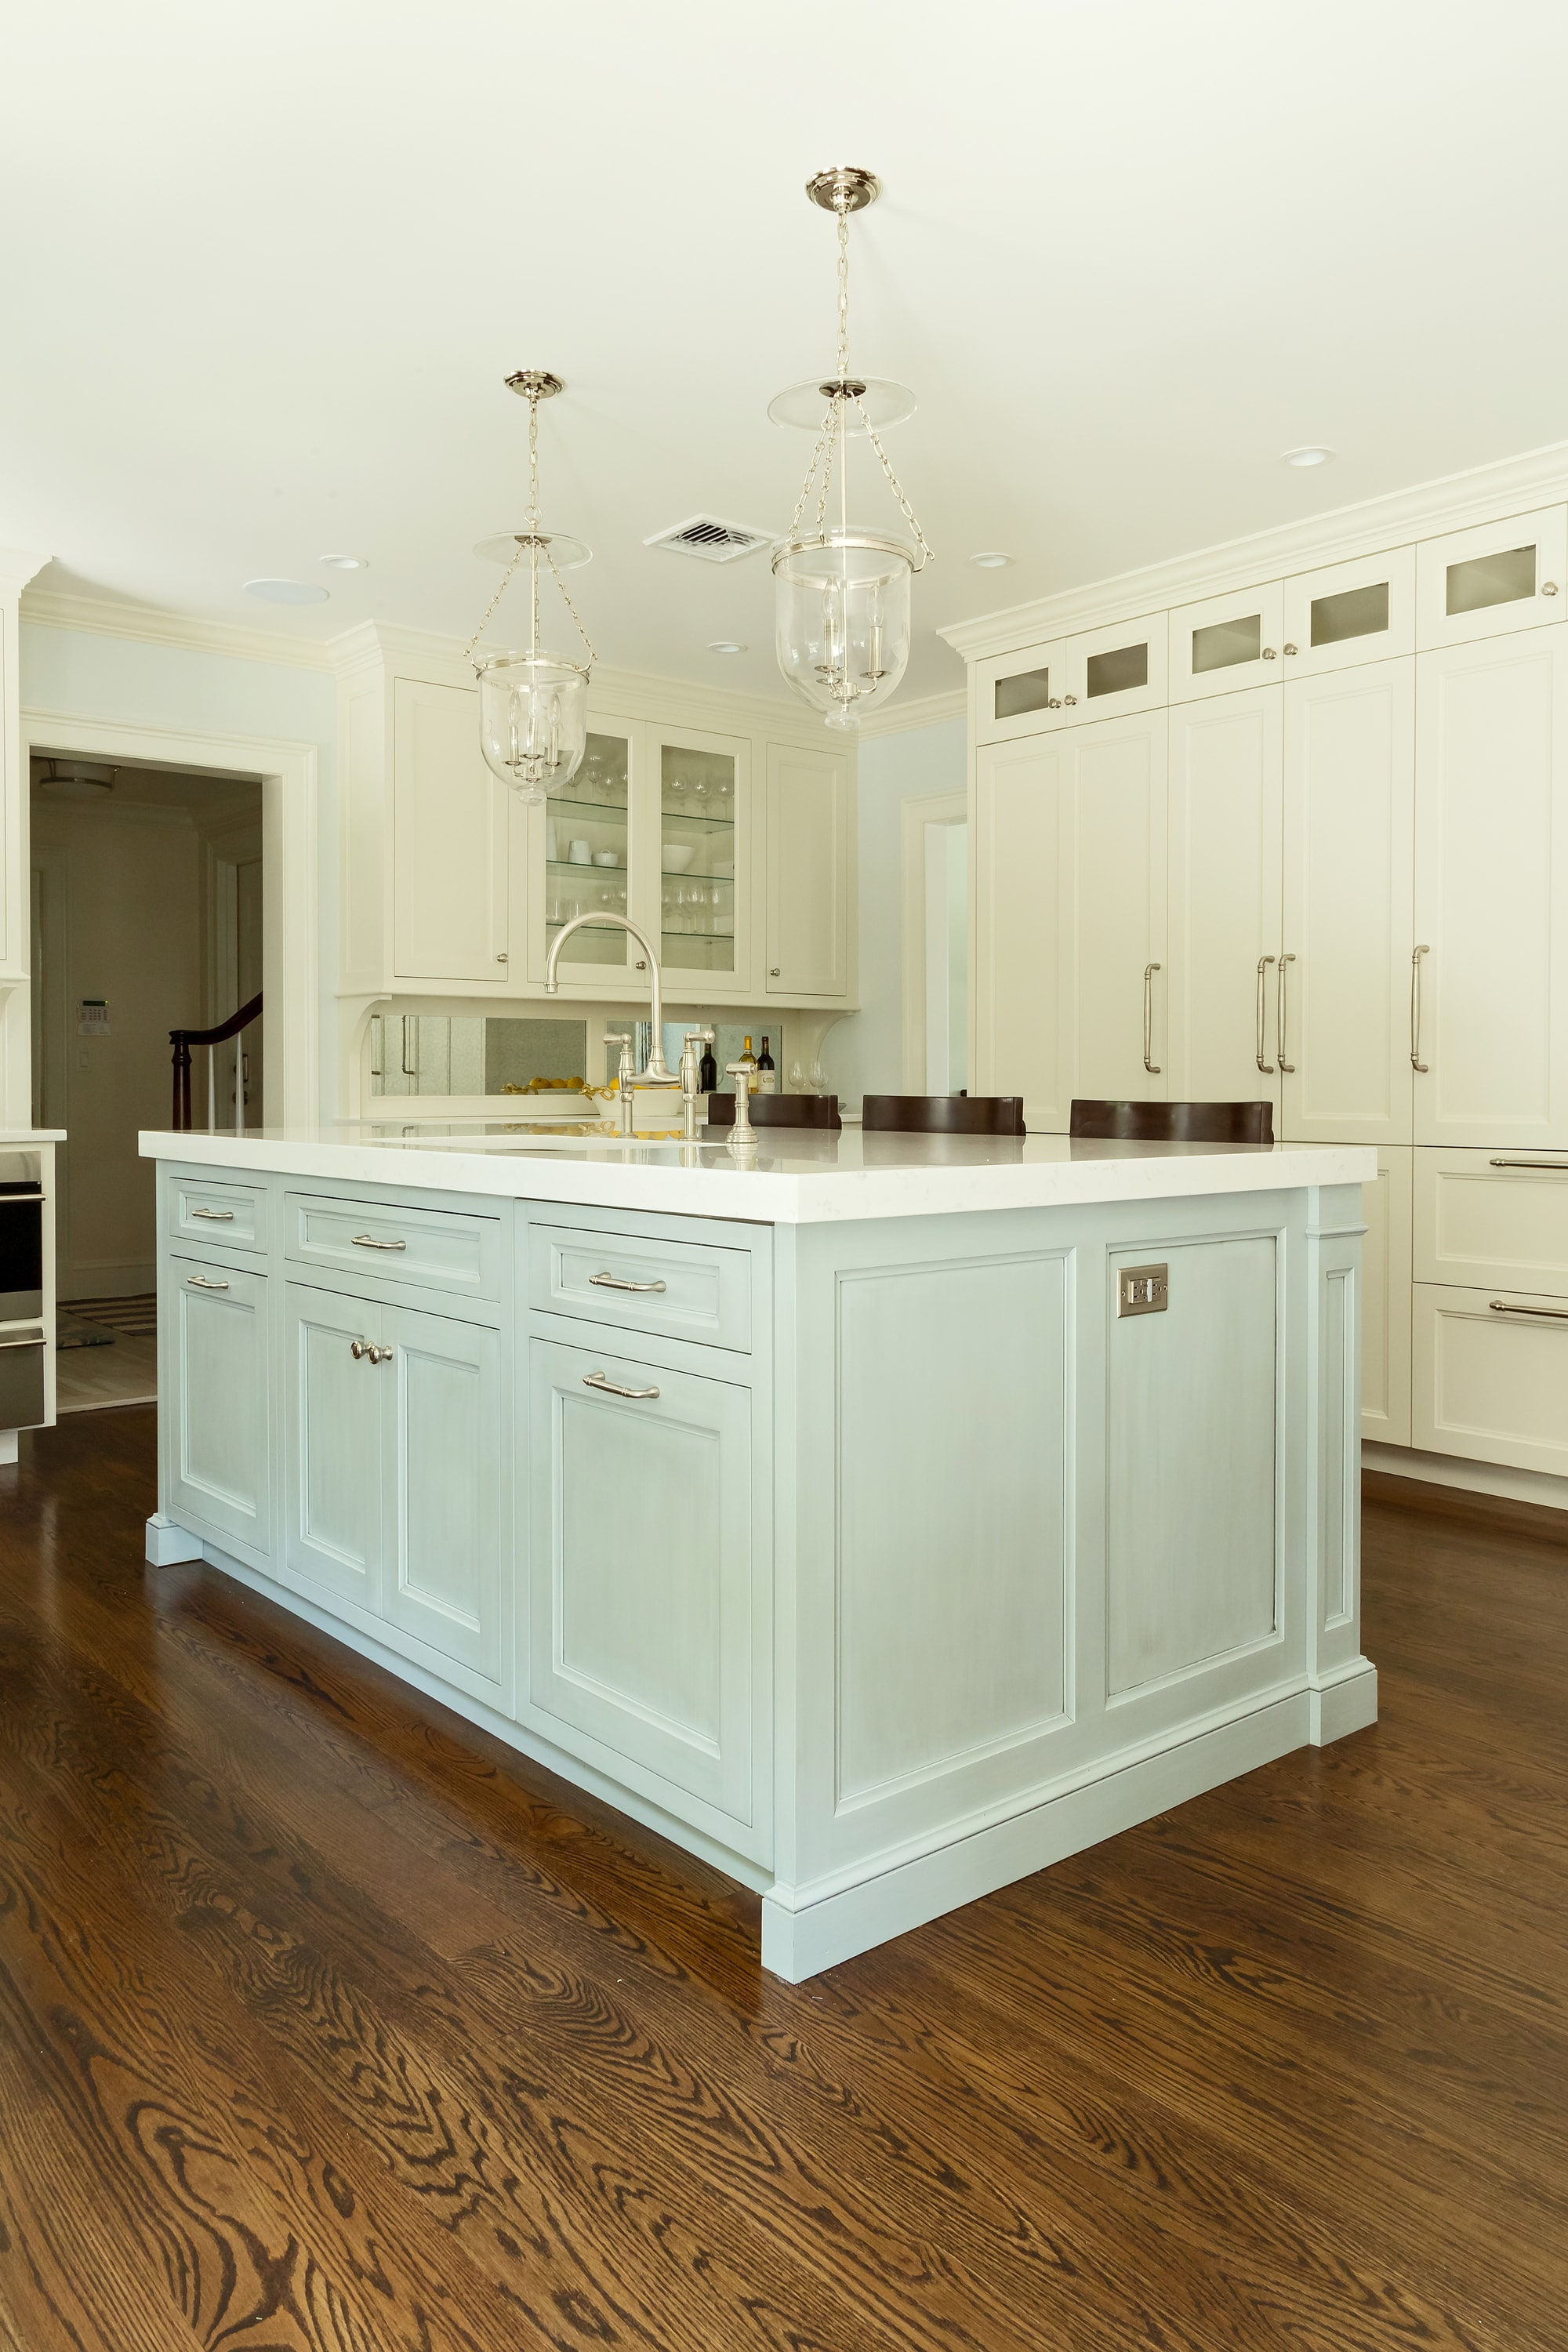 Transitional style kitchen with two hanging pendant light fixture